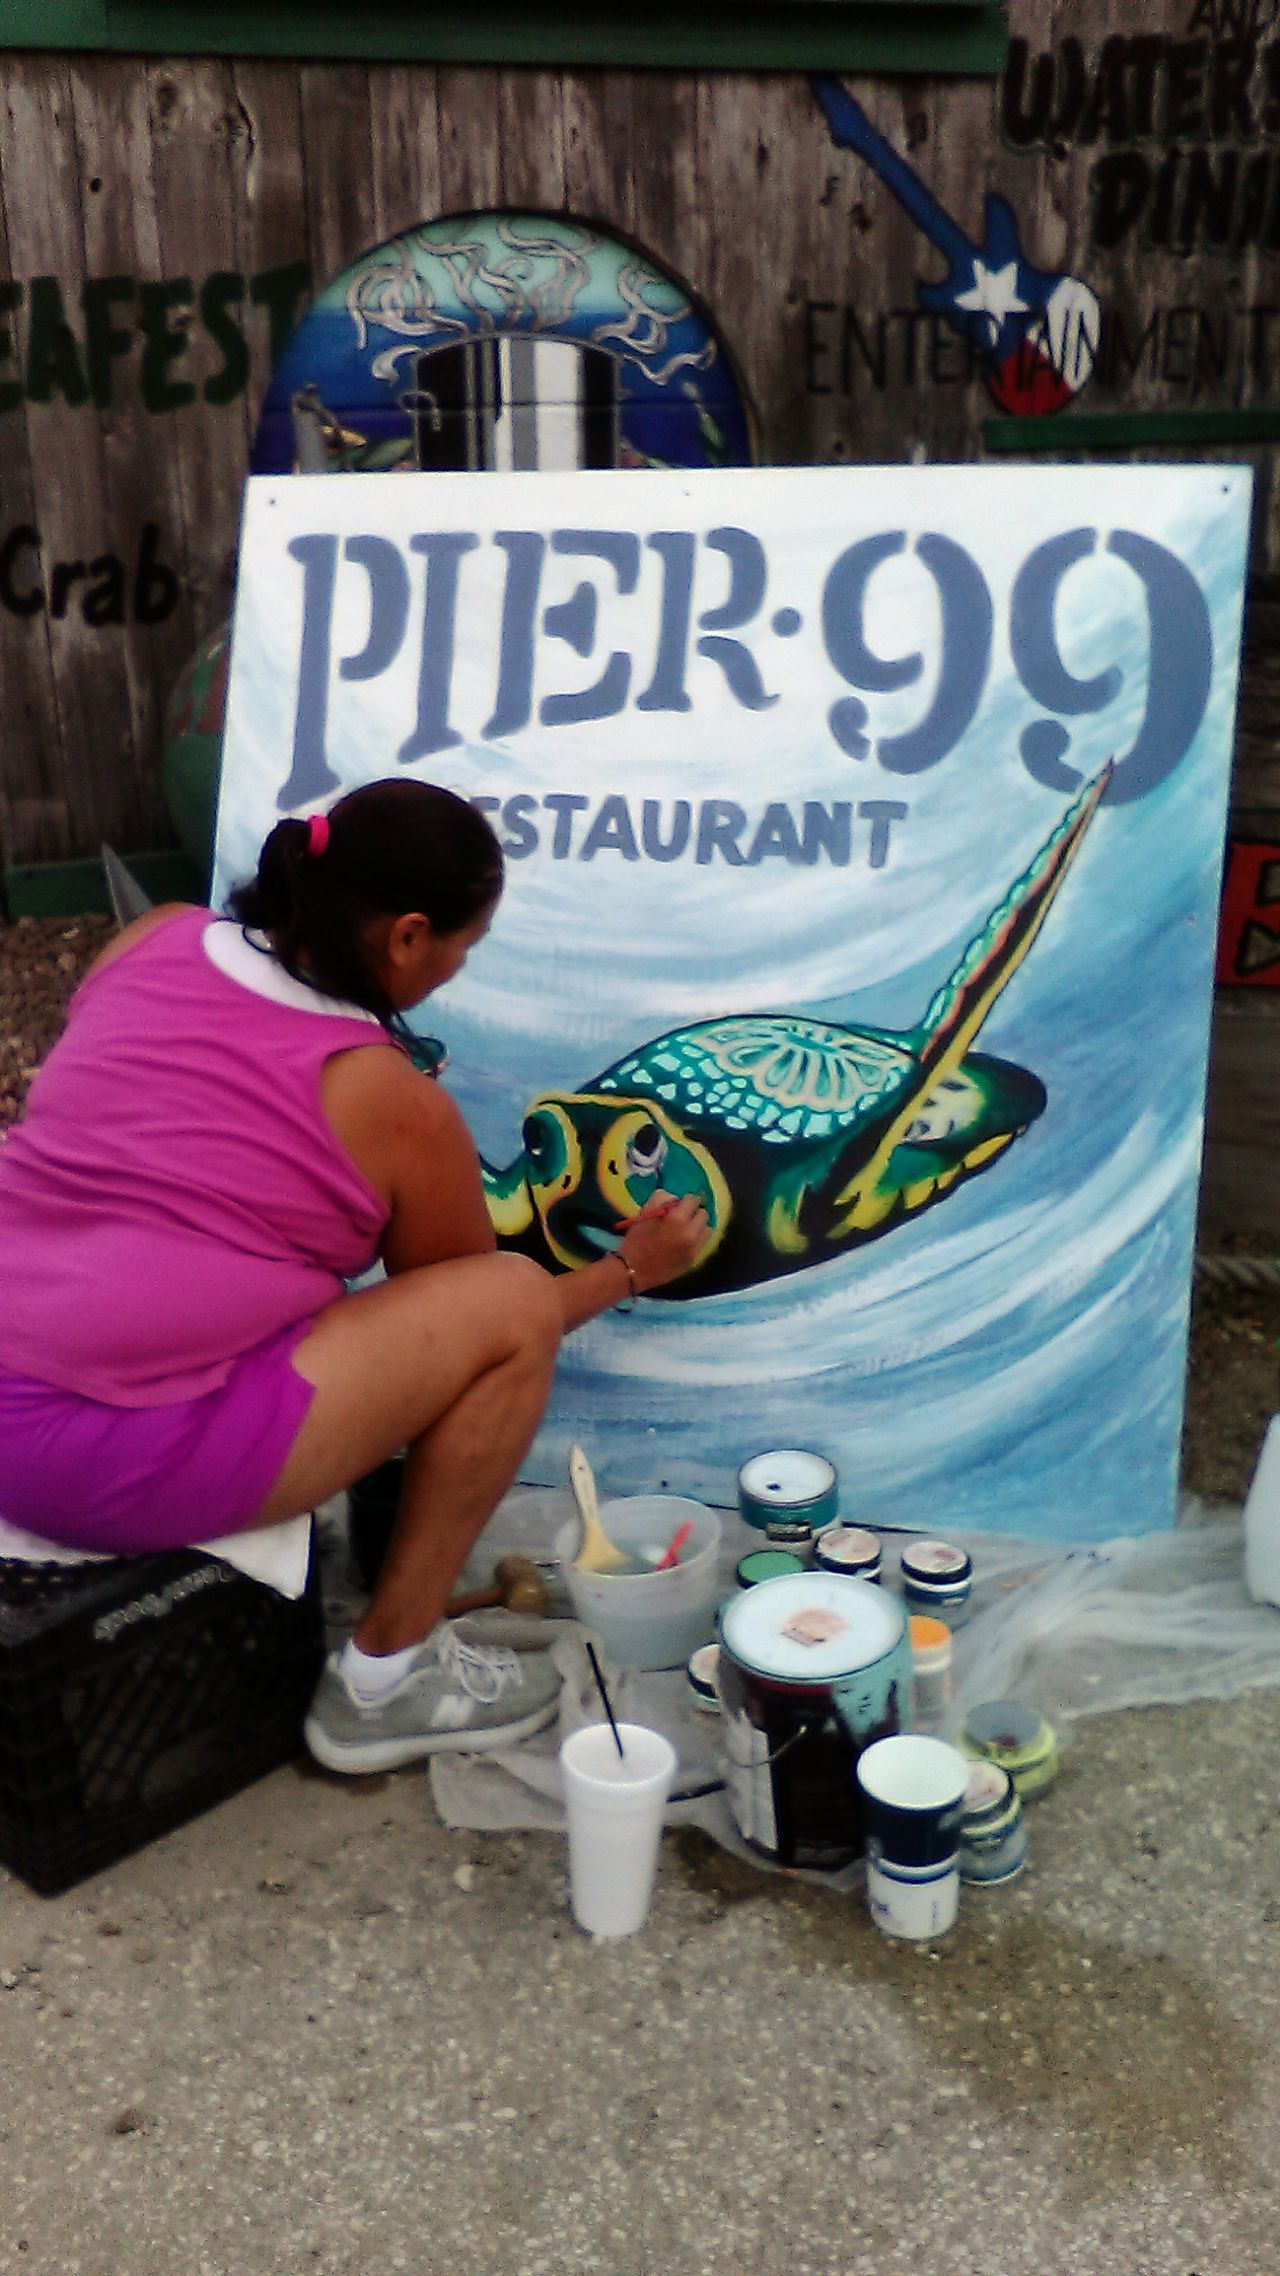 Taking Photos Restaurant Art Artist Working Sea Turtle Great Work Doing Her Thing  Outdoor Photography Sign Sign Painting Sign Photography Sign Painter Capture The Moment New Sign Have A Good Night